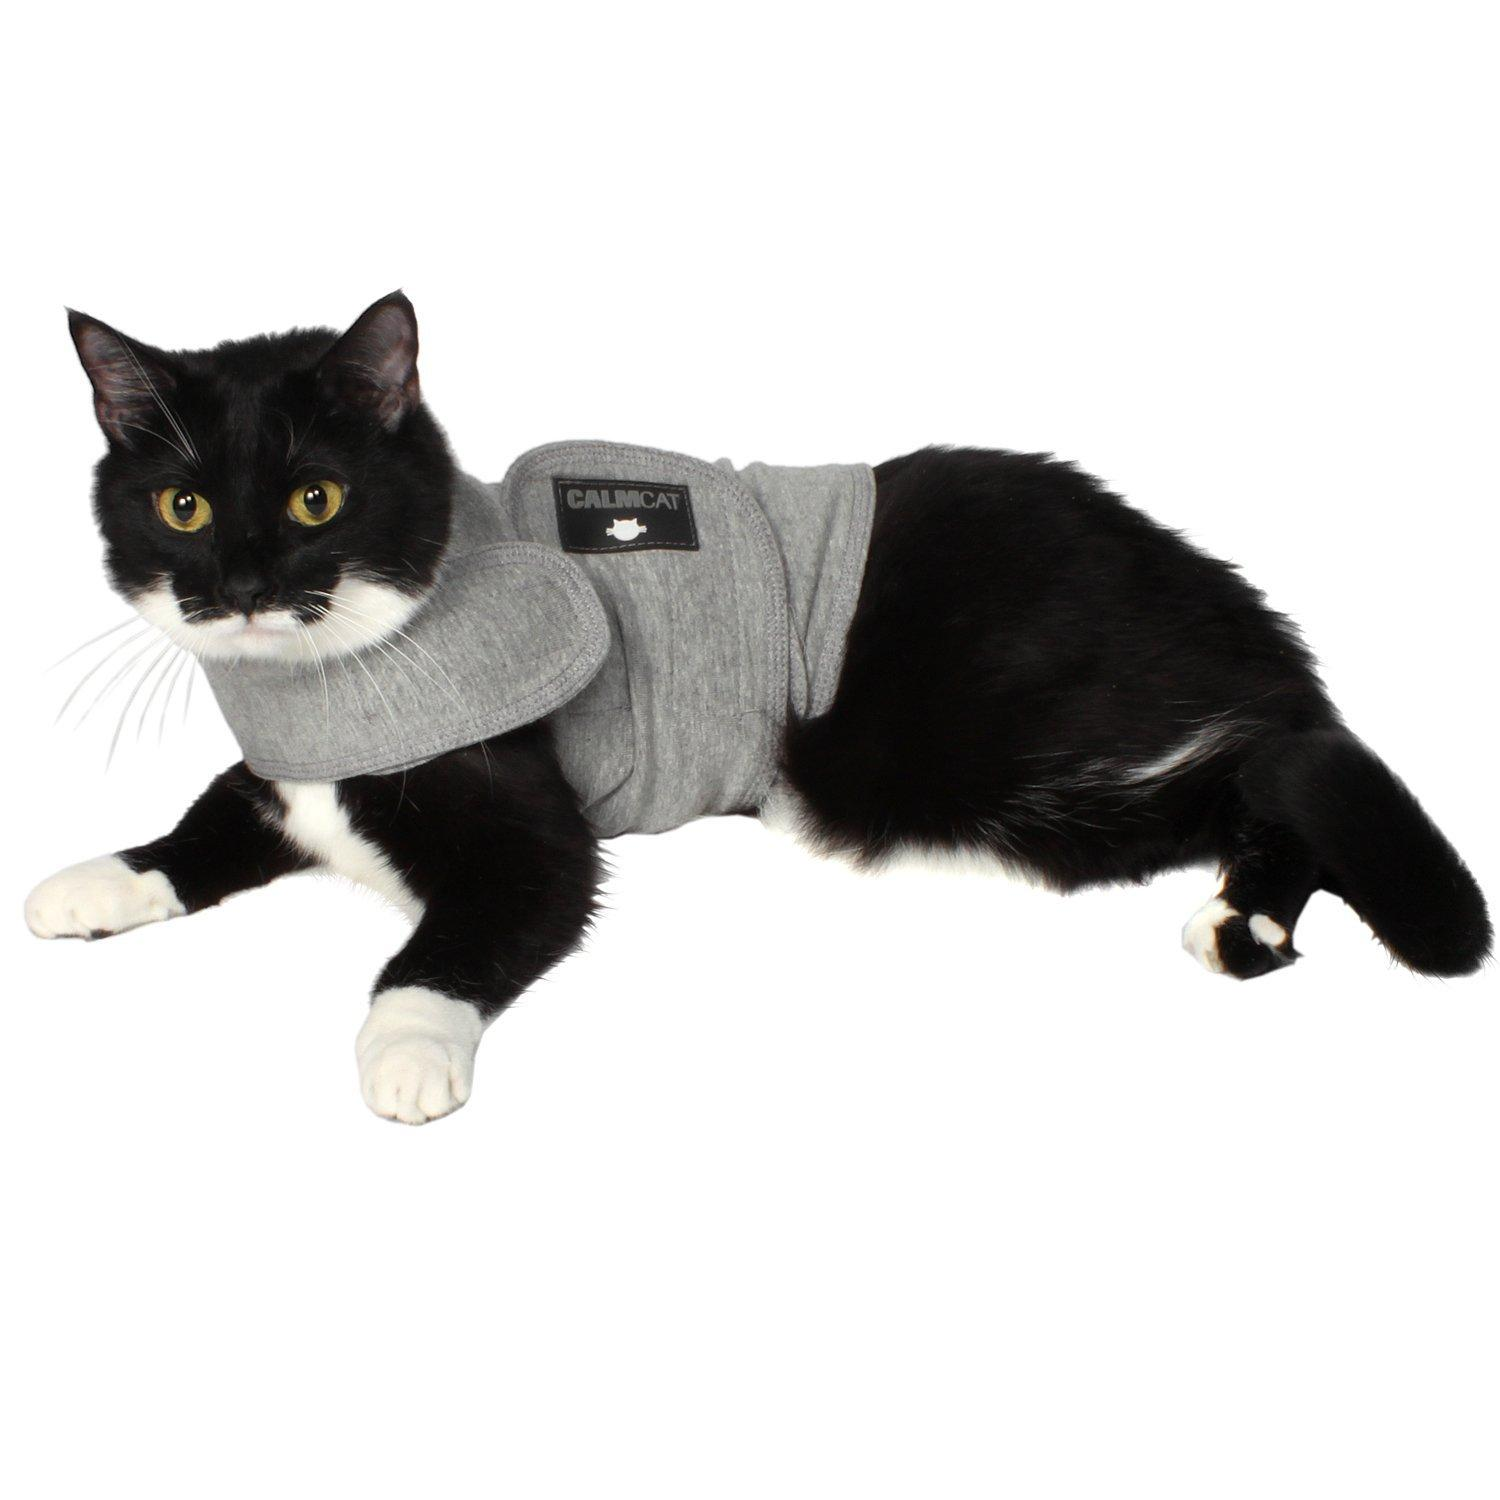 Calm Cat Anti Anxiety and Stress Relief Coat for Cats